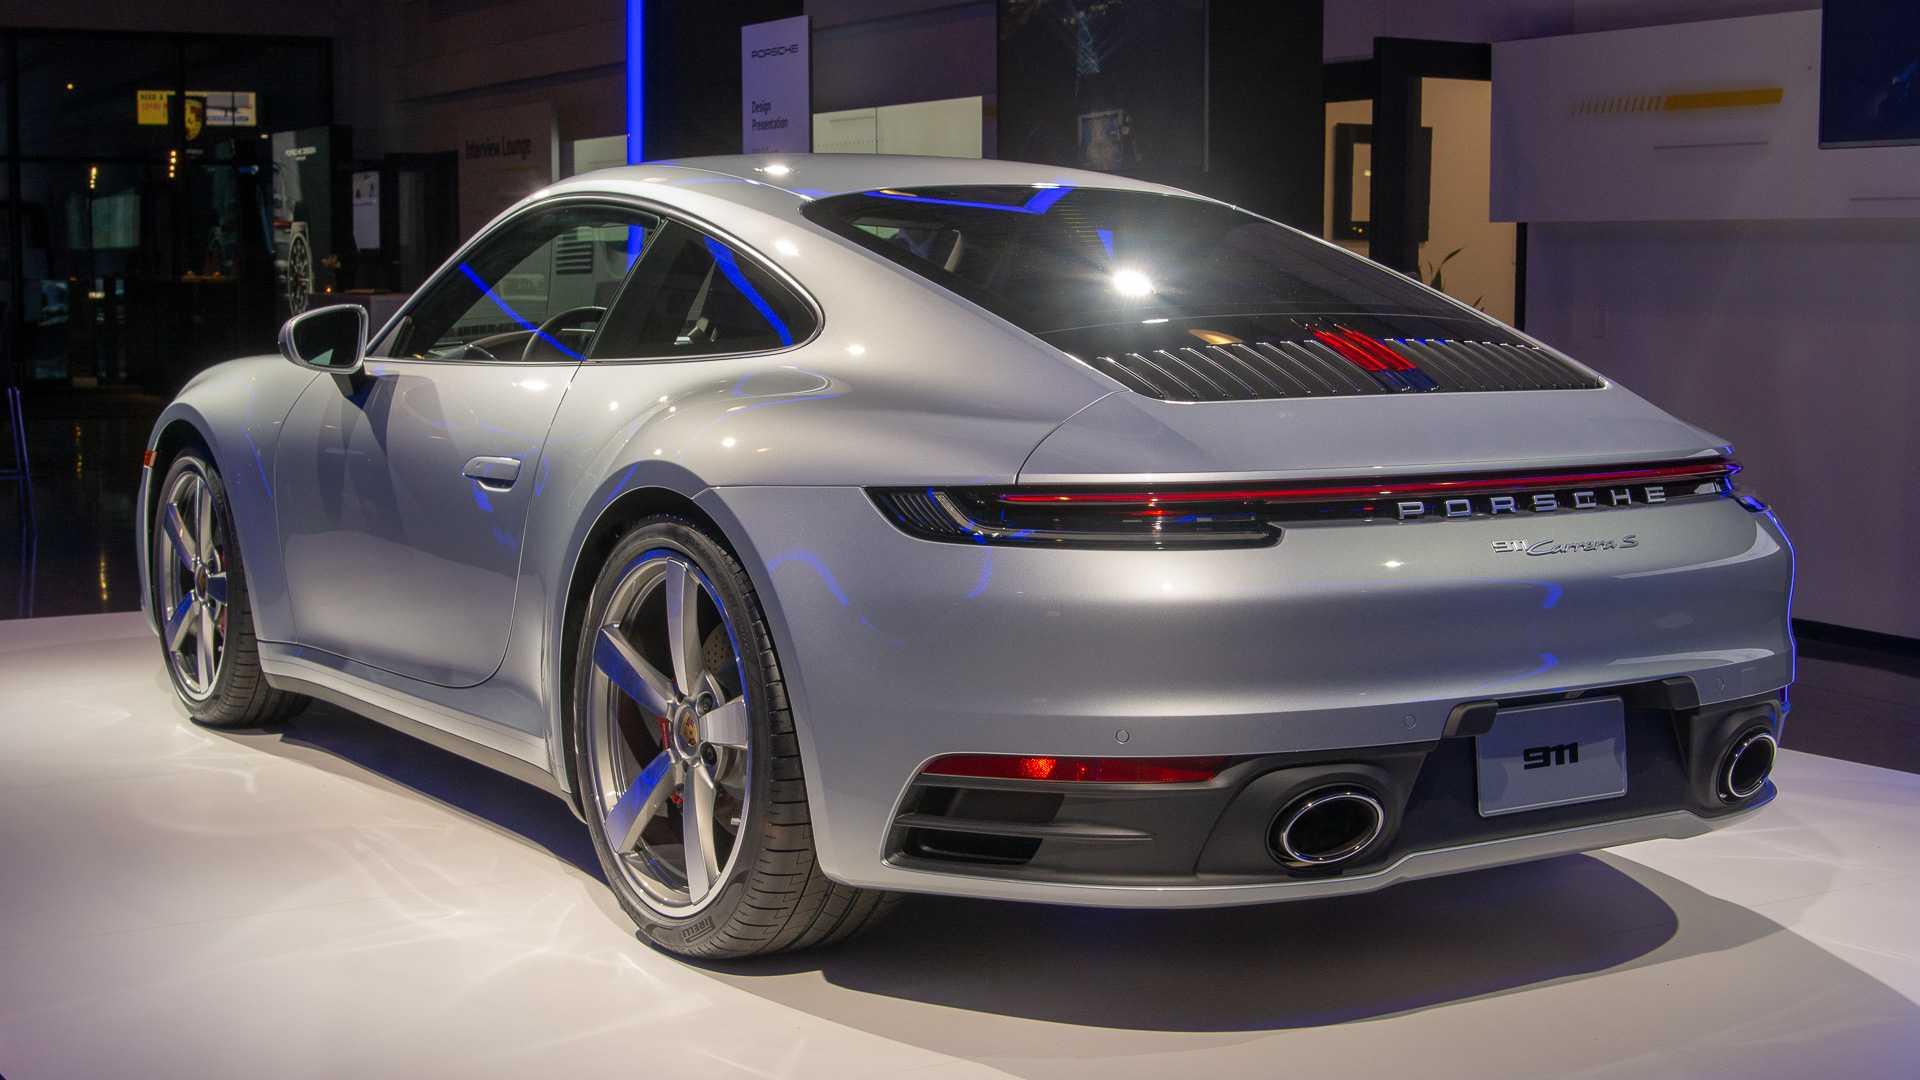 Porsche Carrera S >> 2020 Porsche 911 Carrera S Carrera 4s Debut With 443 Hp